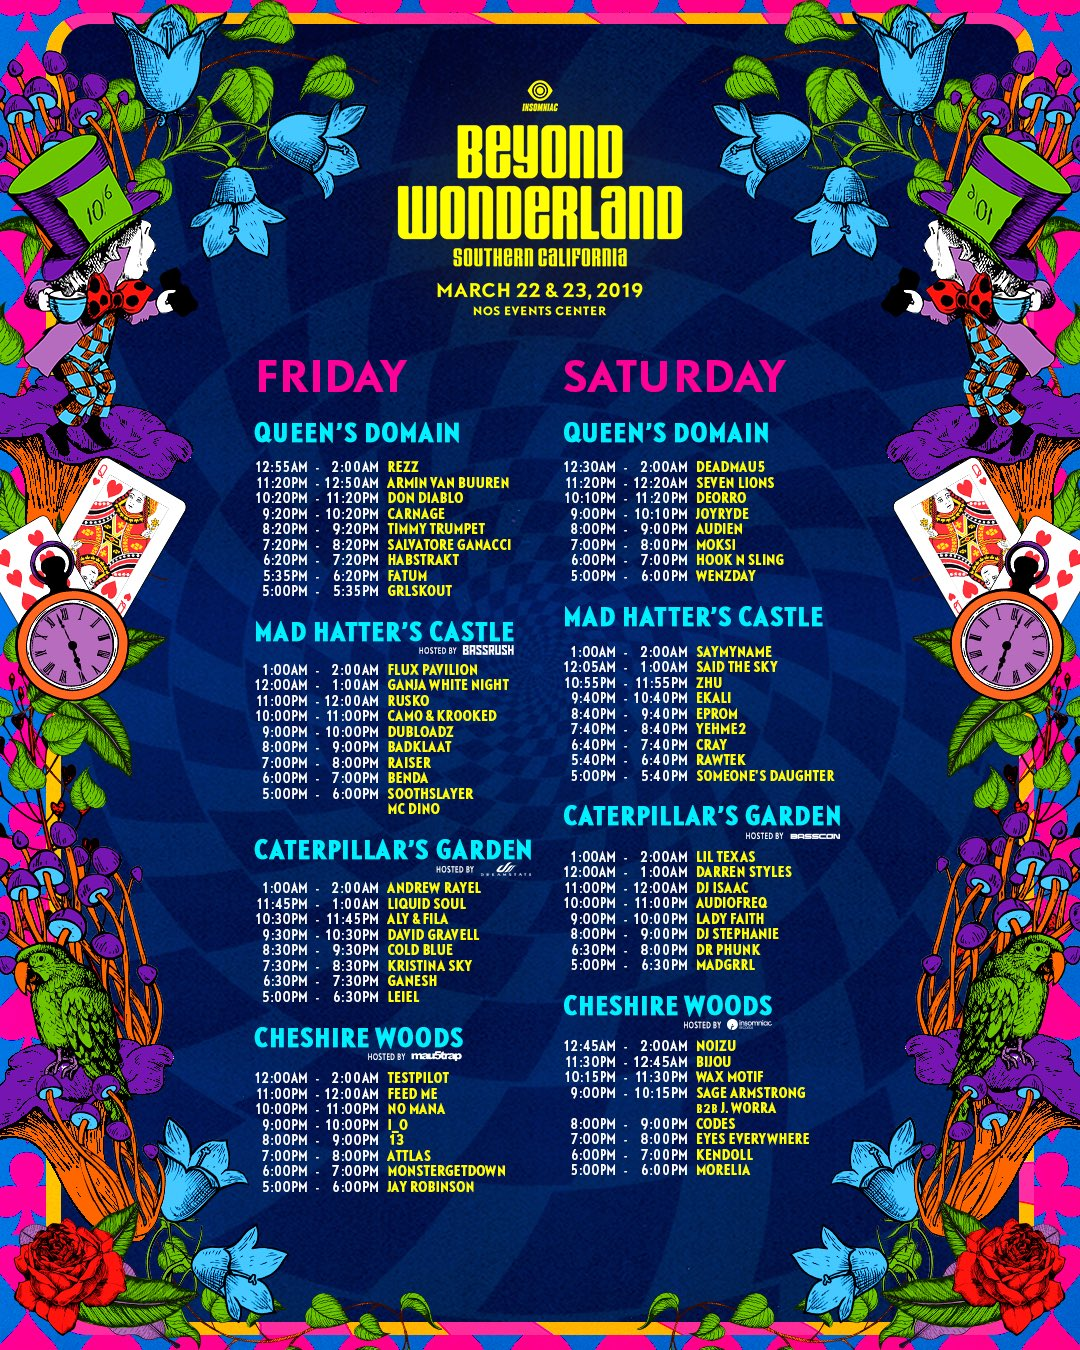 Beyond Wonderland Time Slots